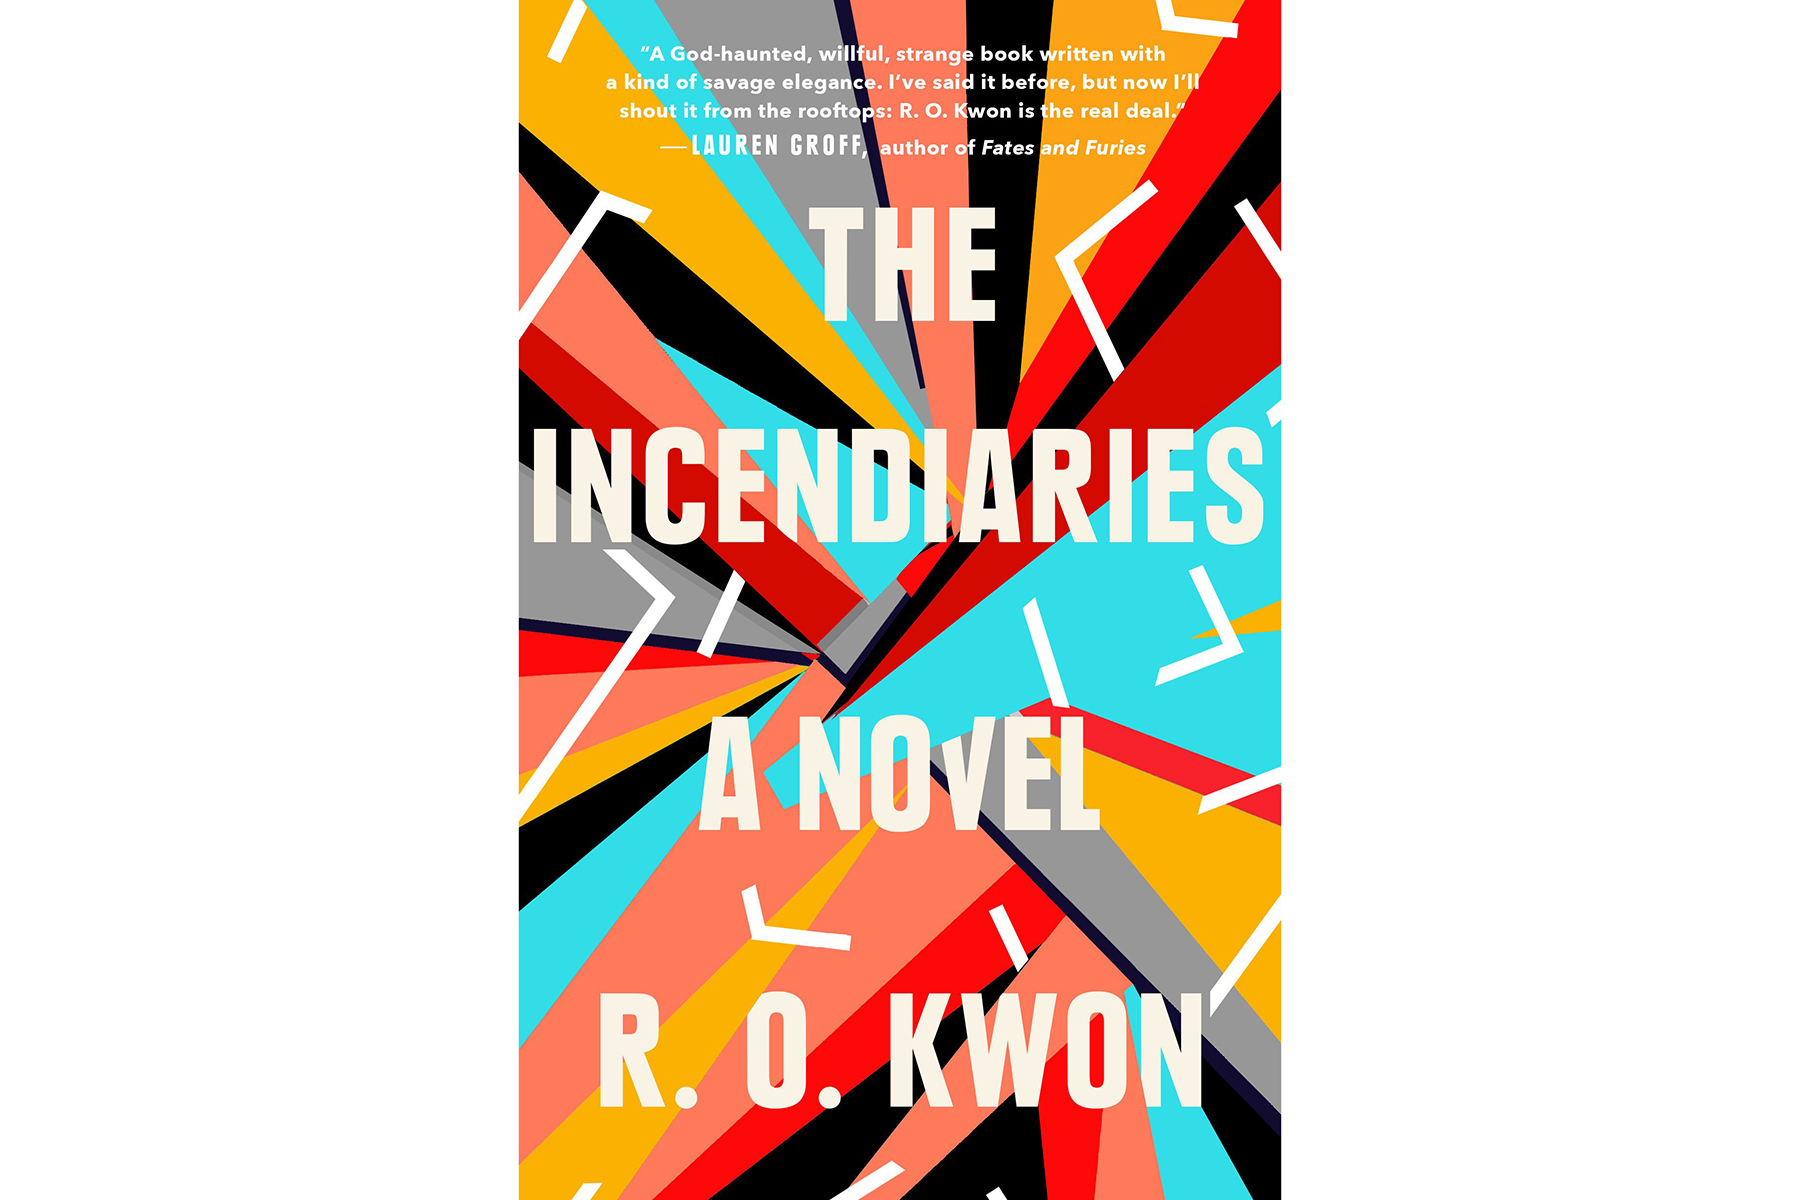 Cover of The Incendiaries